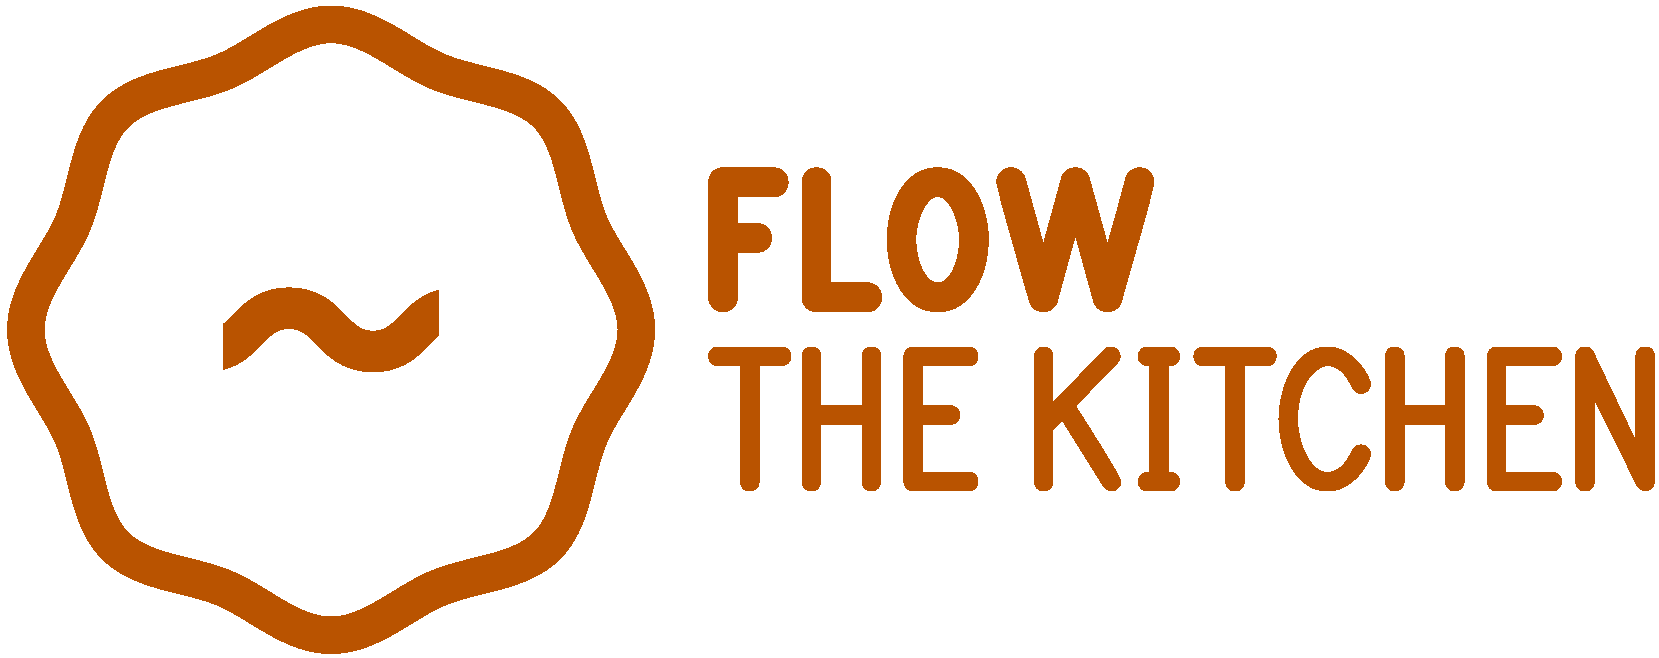 FLOW THE KITCHEN | Catering Frankfurt | Event & Catering Service